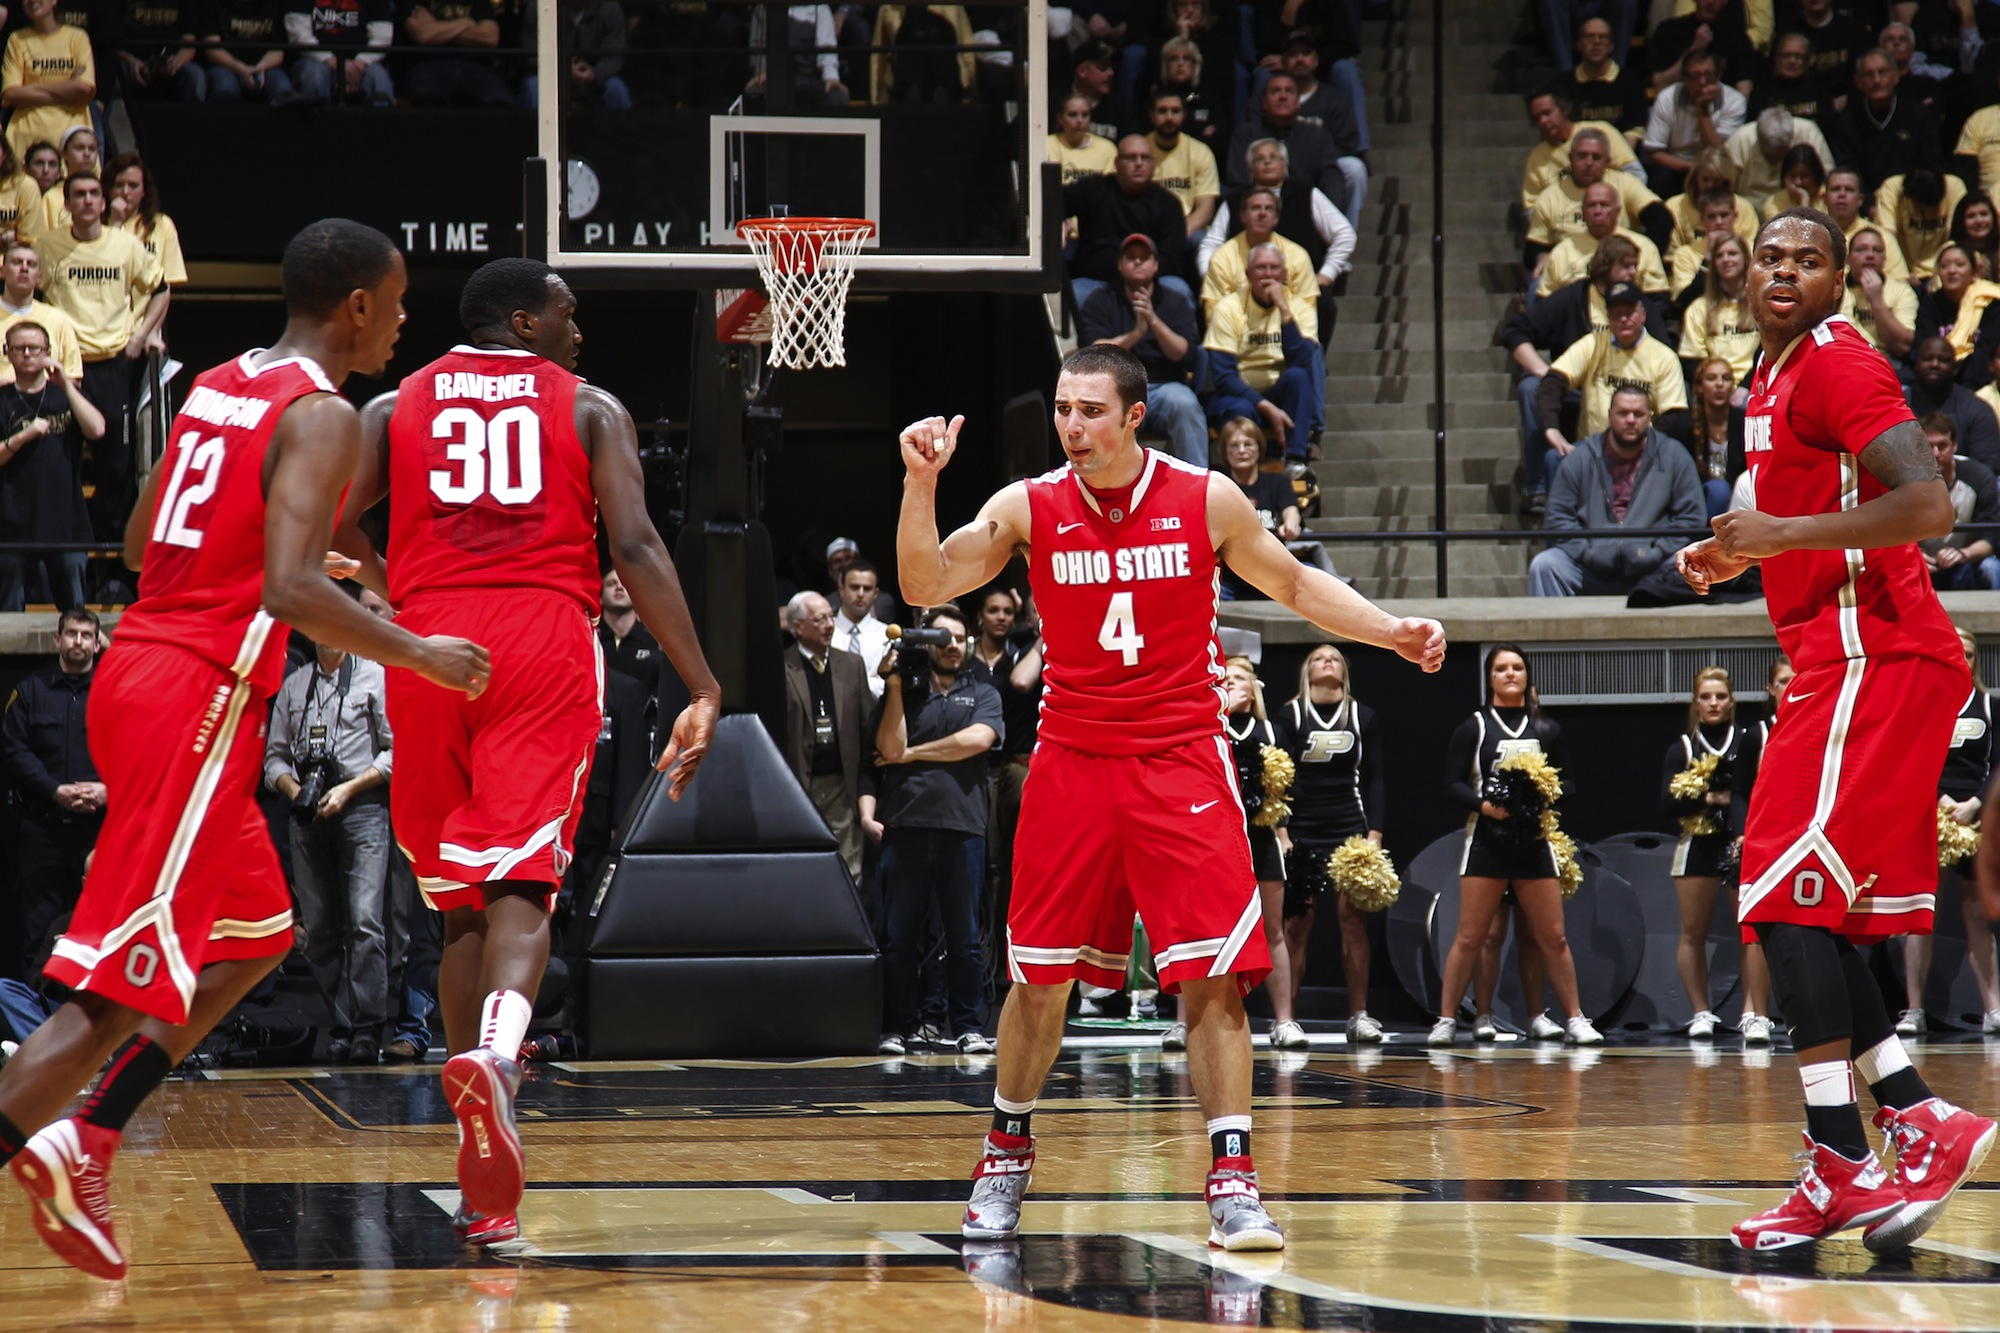 Ohio-State-Purdue-NCAA-Basketball